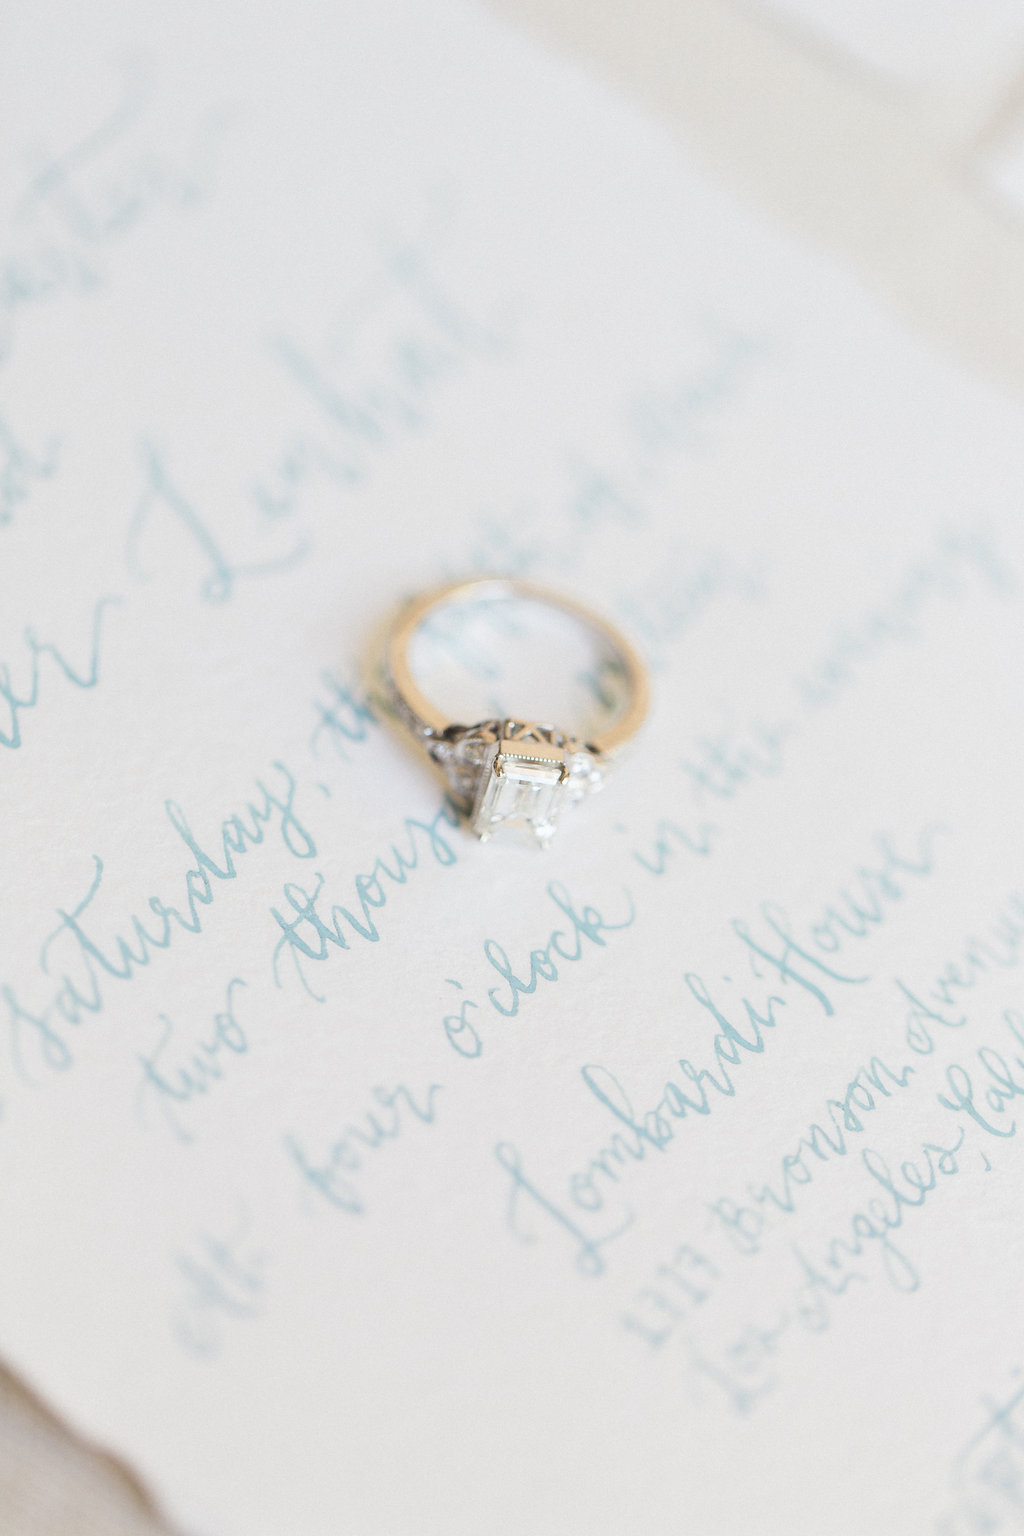 pirouettepaper.com | The Lombardi House Weddings | Pirouette Paper | Pale Blue Wedding Inspiration | Wedding Calligraphy and Invitations